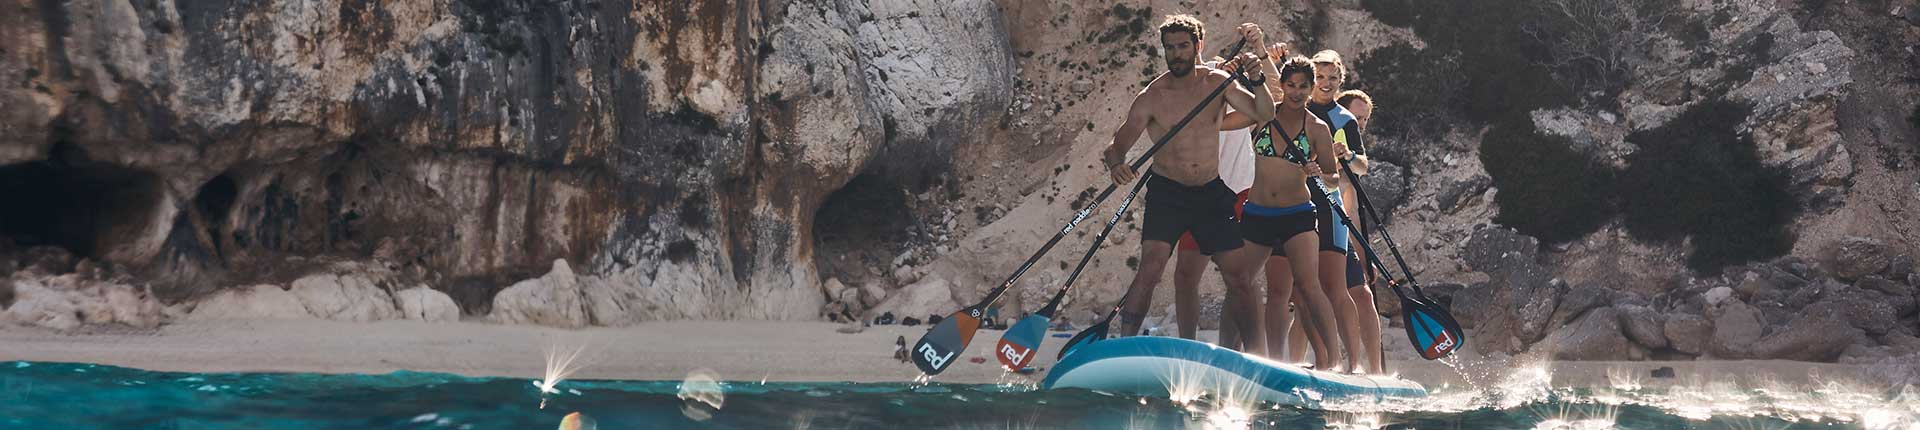 "Exploring the Sardinian coastline with the Red Paddle Co 17'0"" Ride XL"